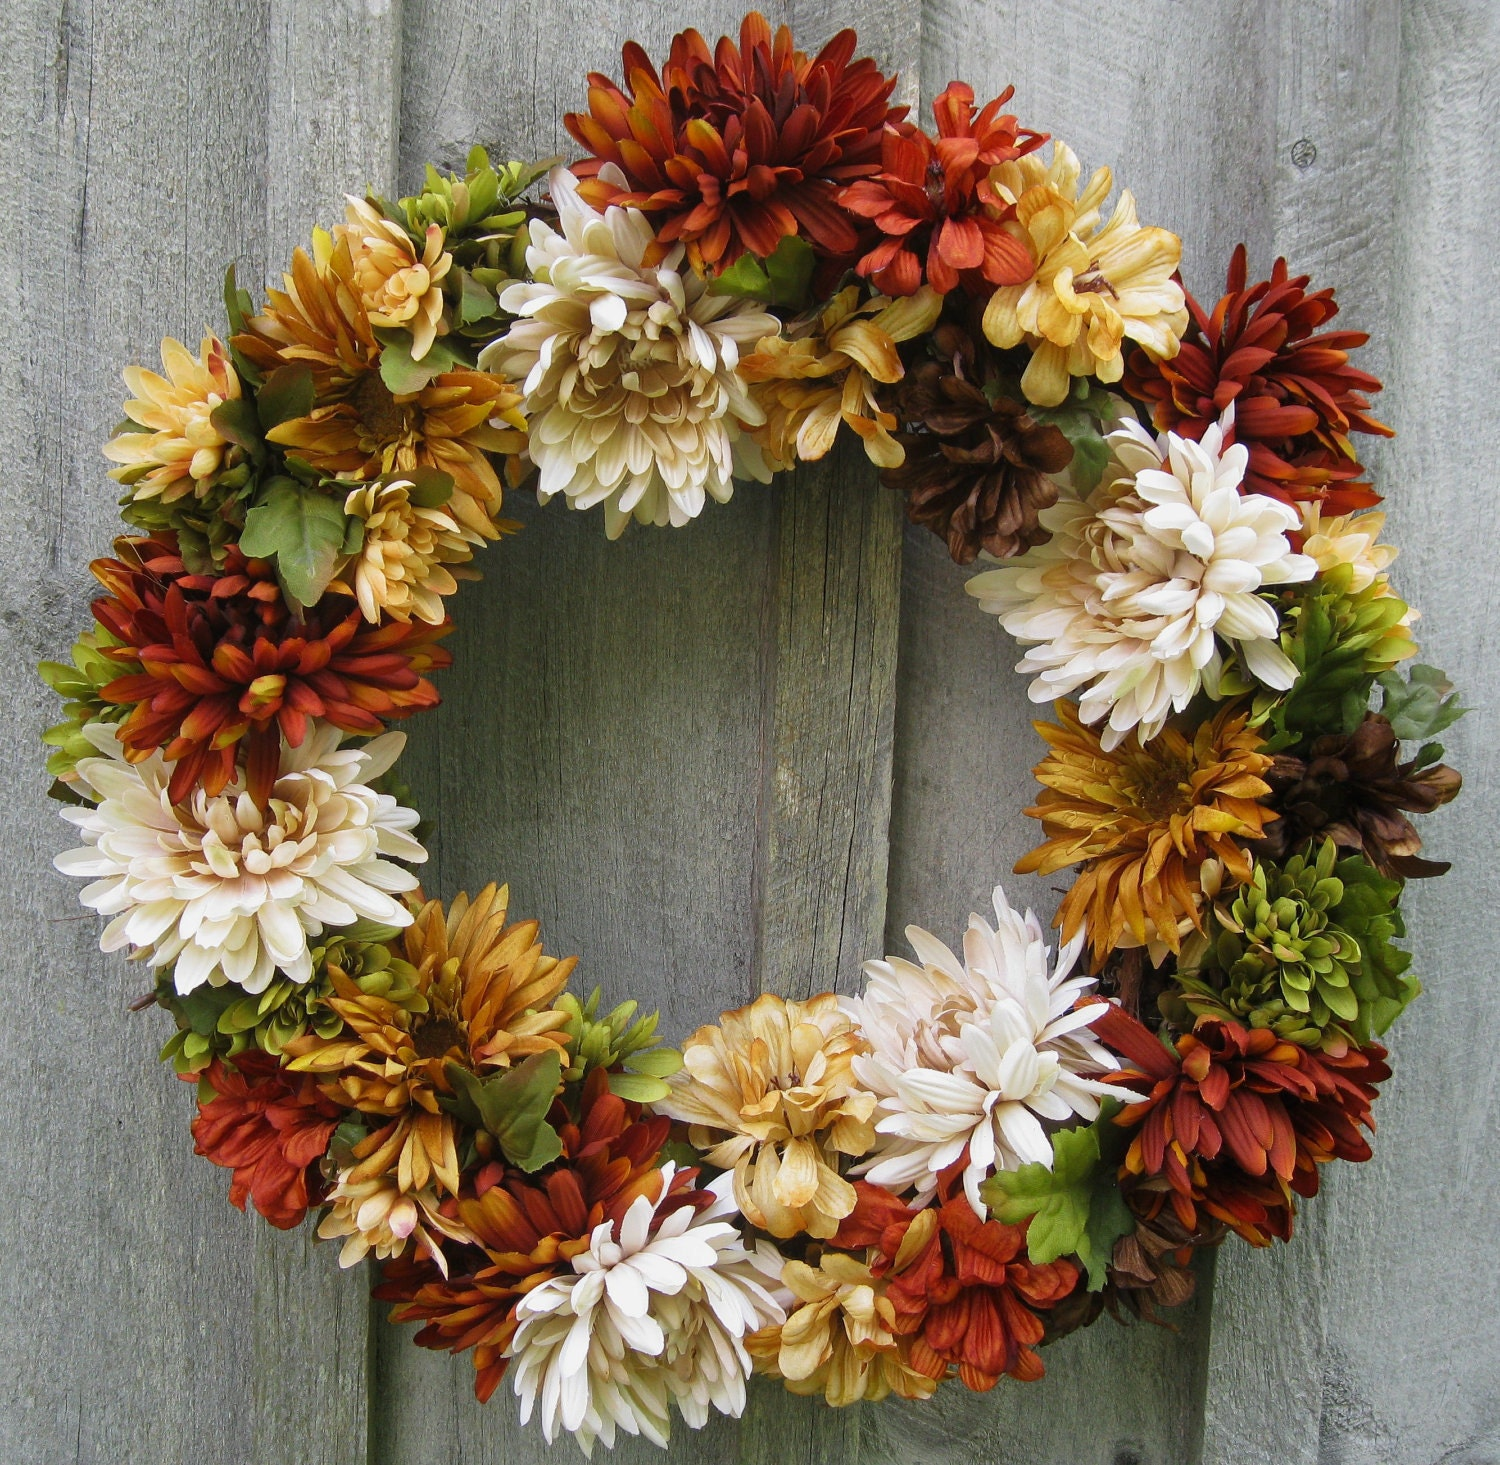 Sale fall wreaths chrysanthemum autumn floral wreath Fall autumn door wreaths